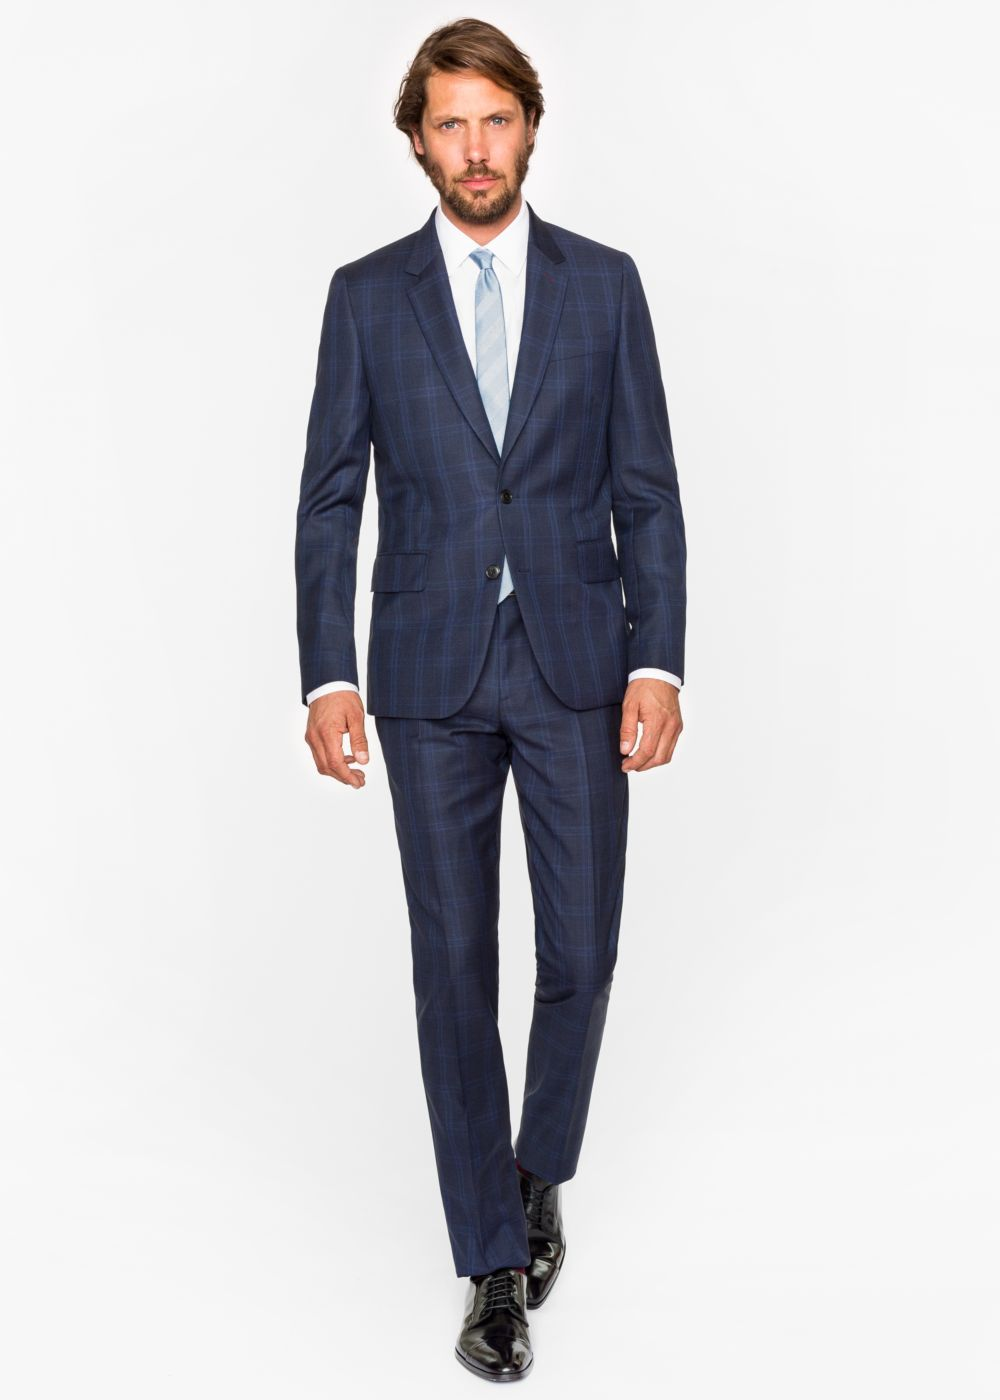 Paul Smith The Soho - Men's Tailored-Fit Navy Check Wool Suit